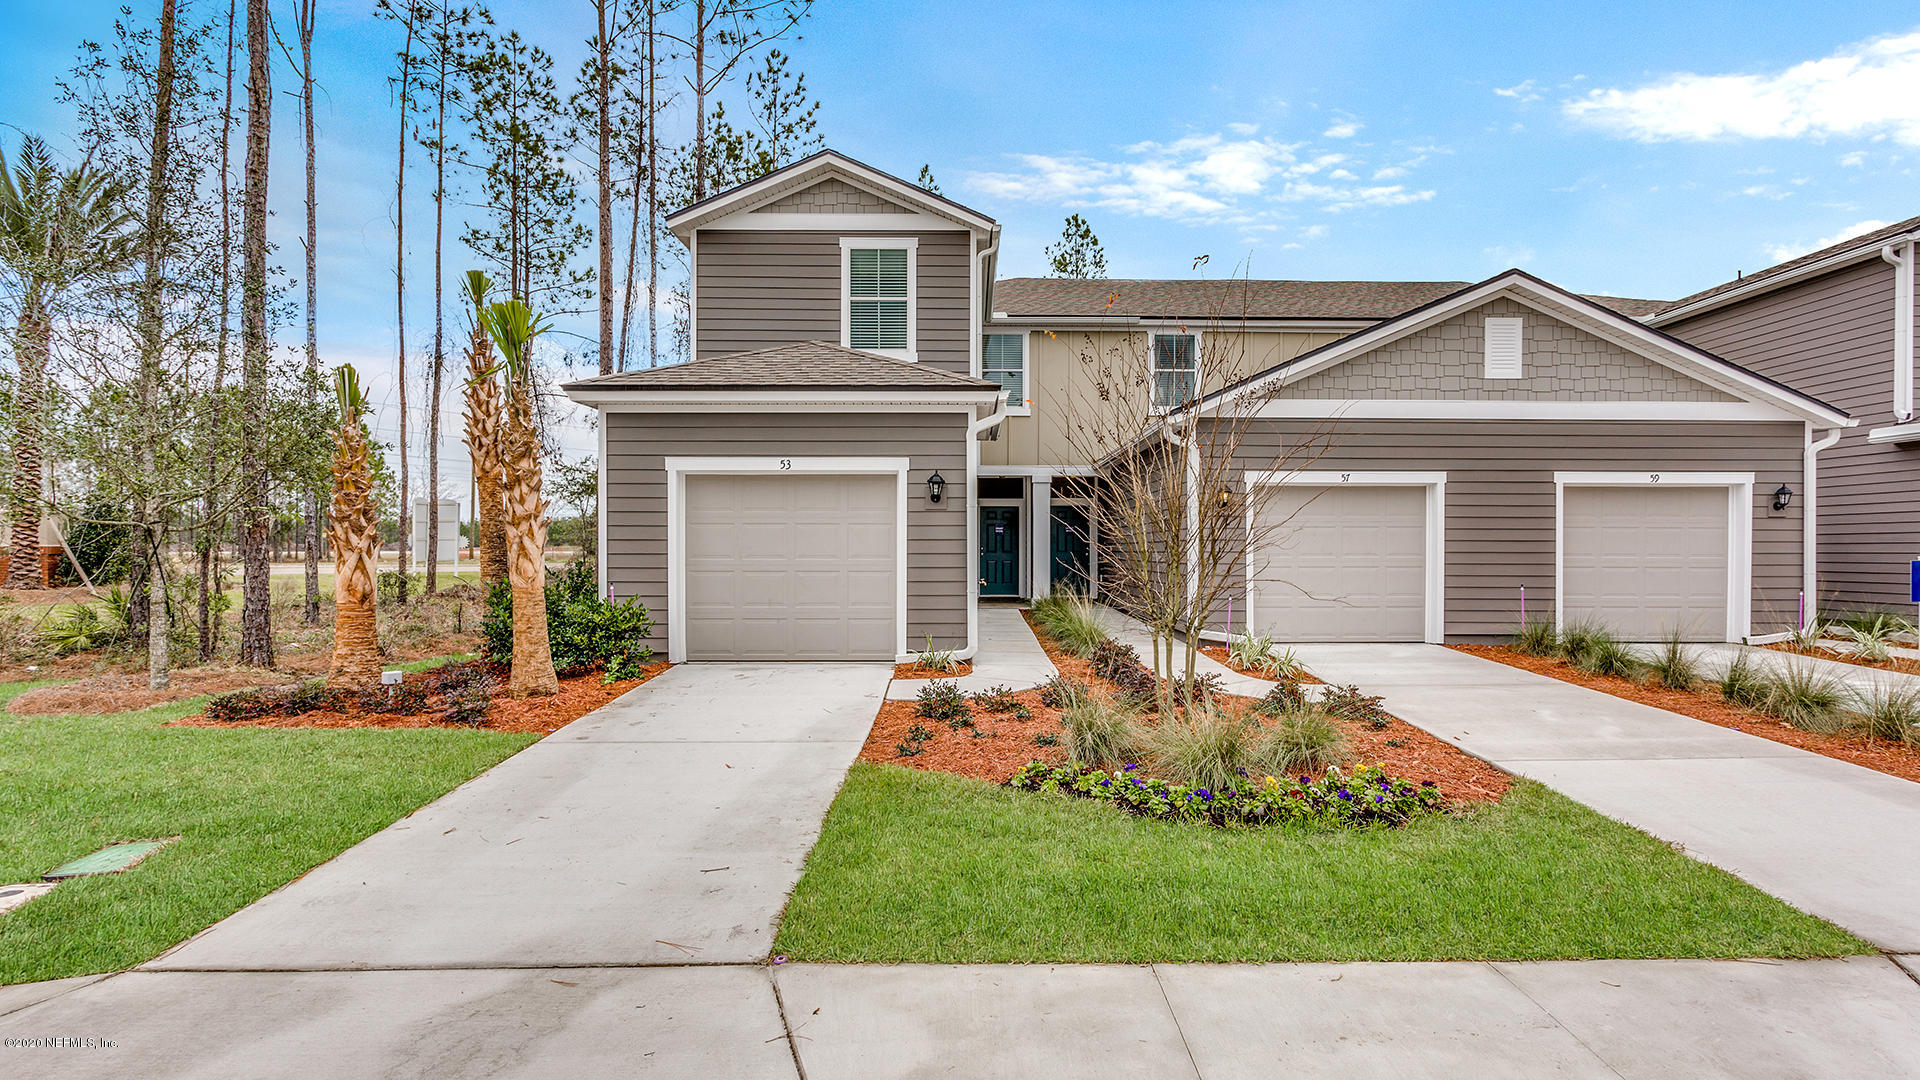 63 SCOTCH PEBBLE, ST JOHNS, FLORIDA 32259, 3 Bedrooms Bedrooms, ,2 BathroomsBathrooms,Residential,For sale,SCOTCH PEBBLE,1080999